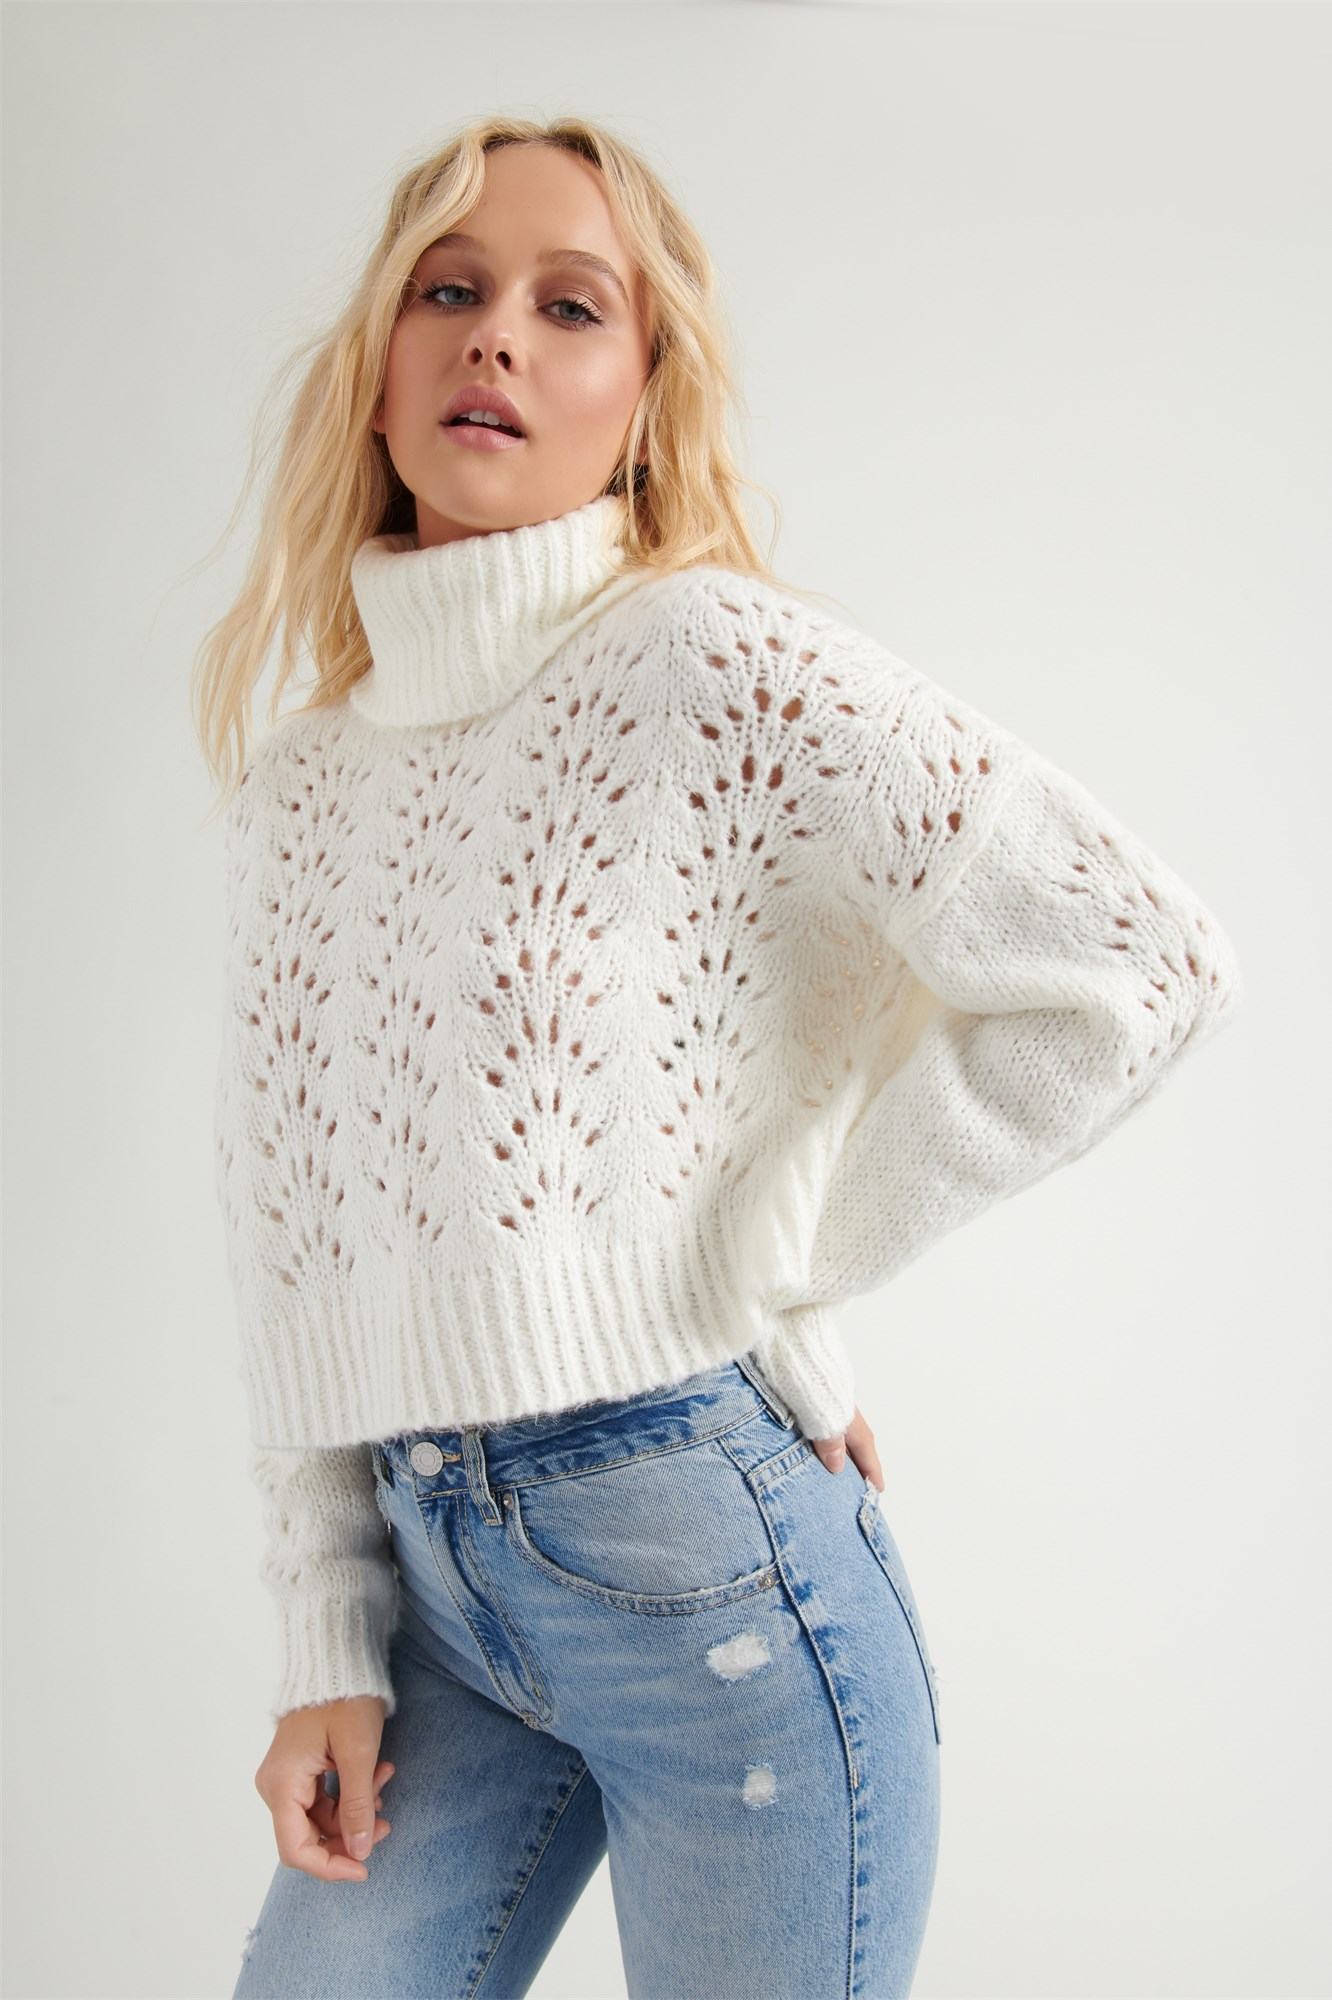 Image 2 of Pointelle Turtleneck Sweater